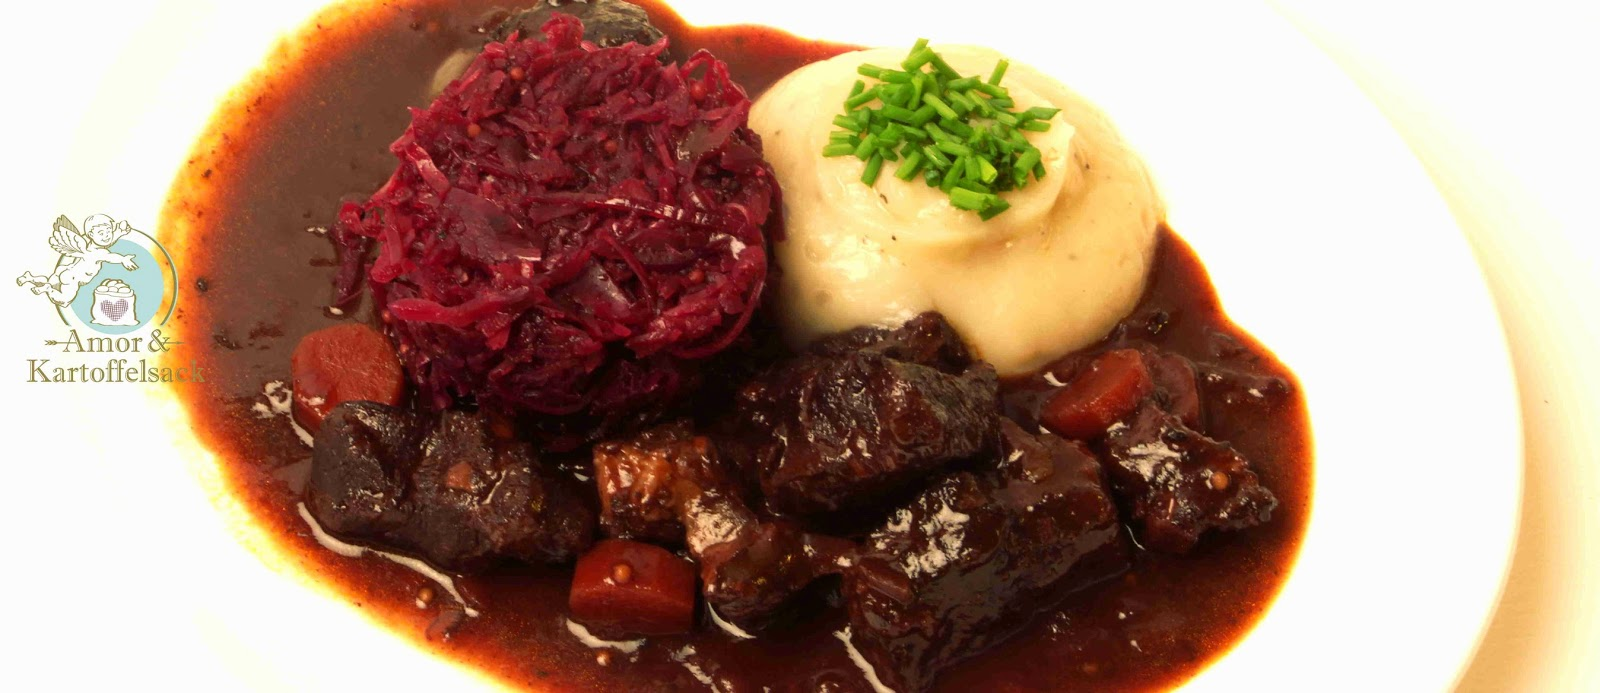 Wildgulasch Topinambur Blaukraut